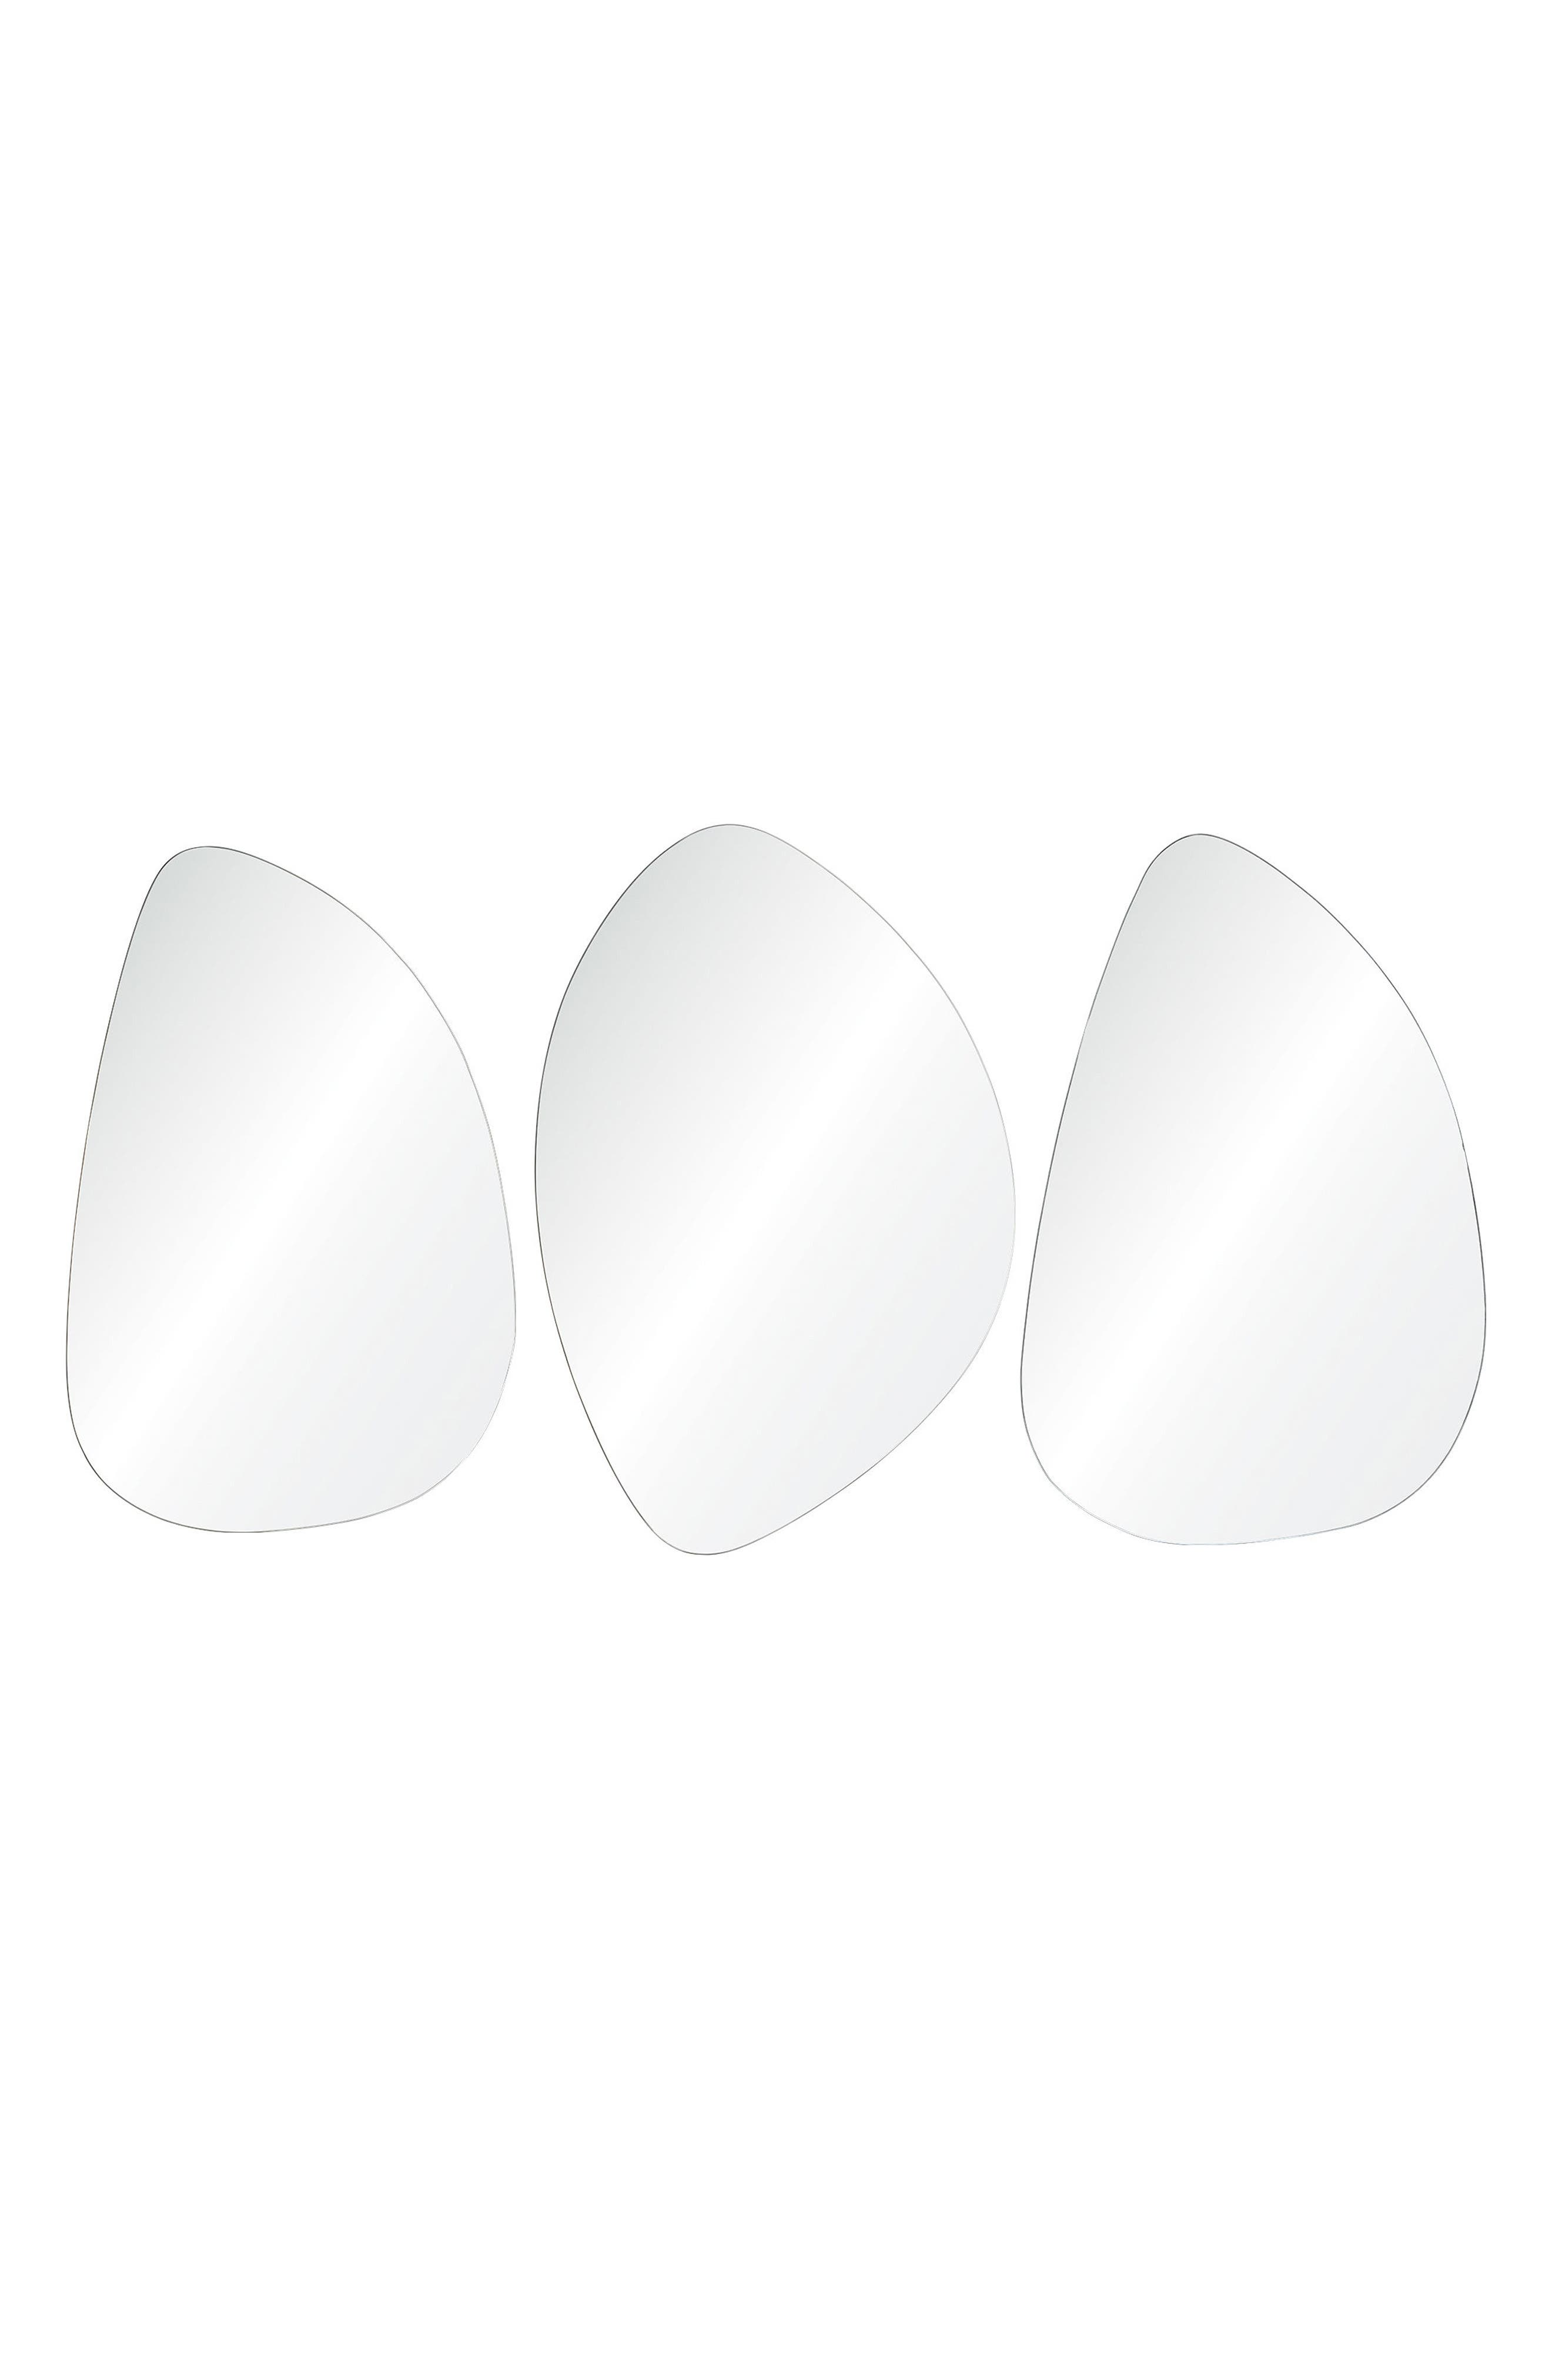 Stockdale Set of 3 Mirrors,                         Main,                         color, 040